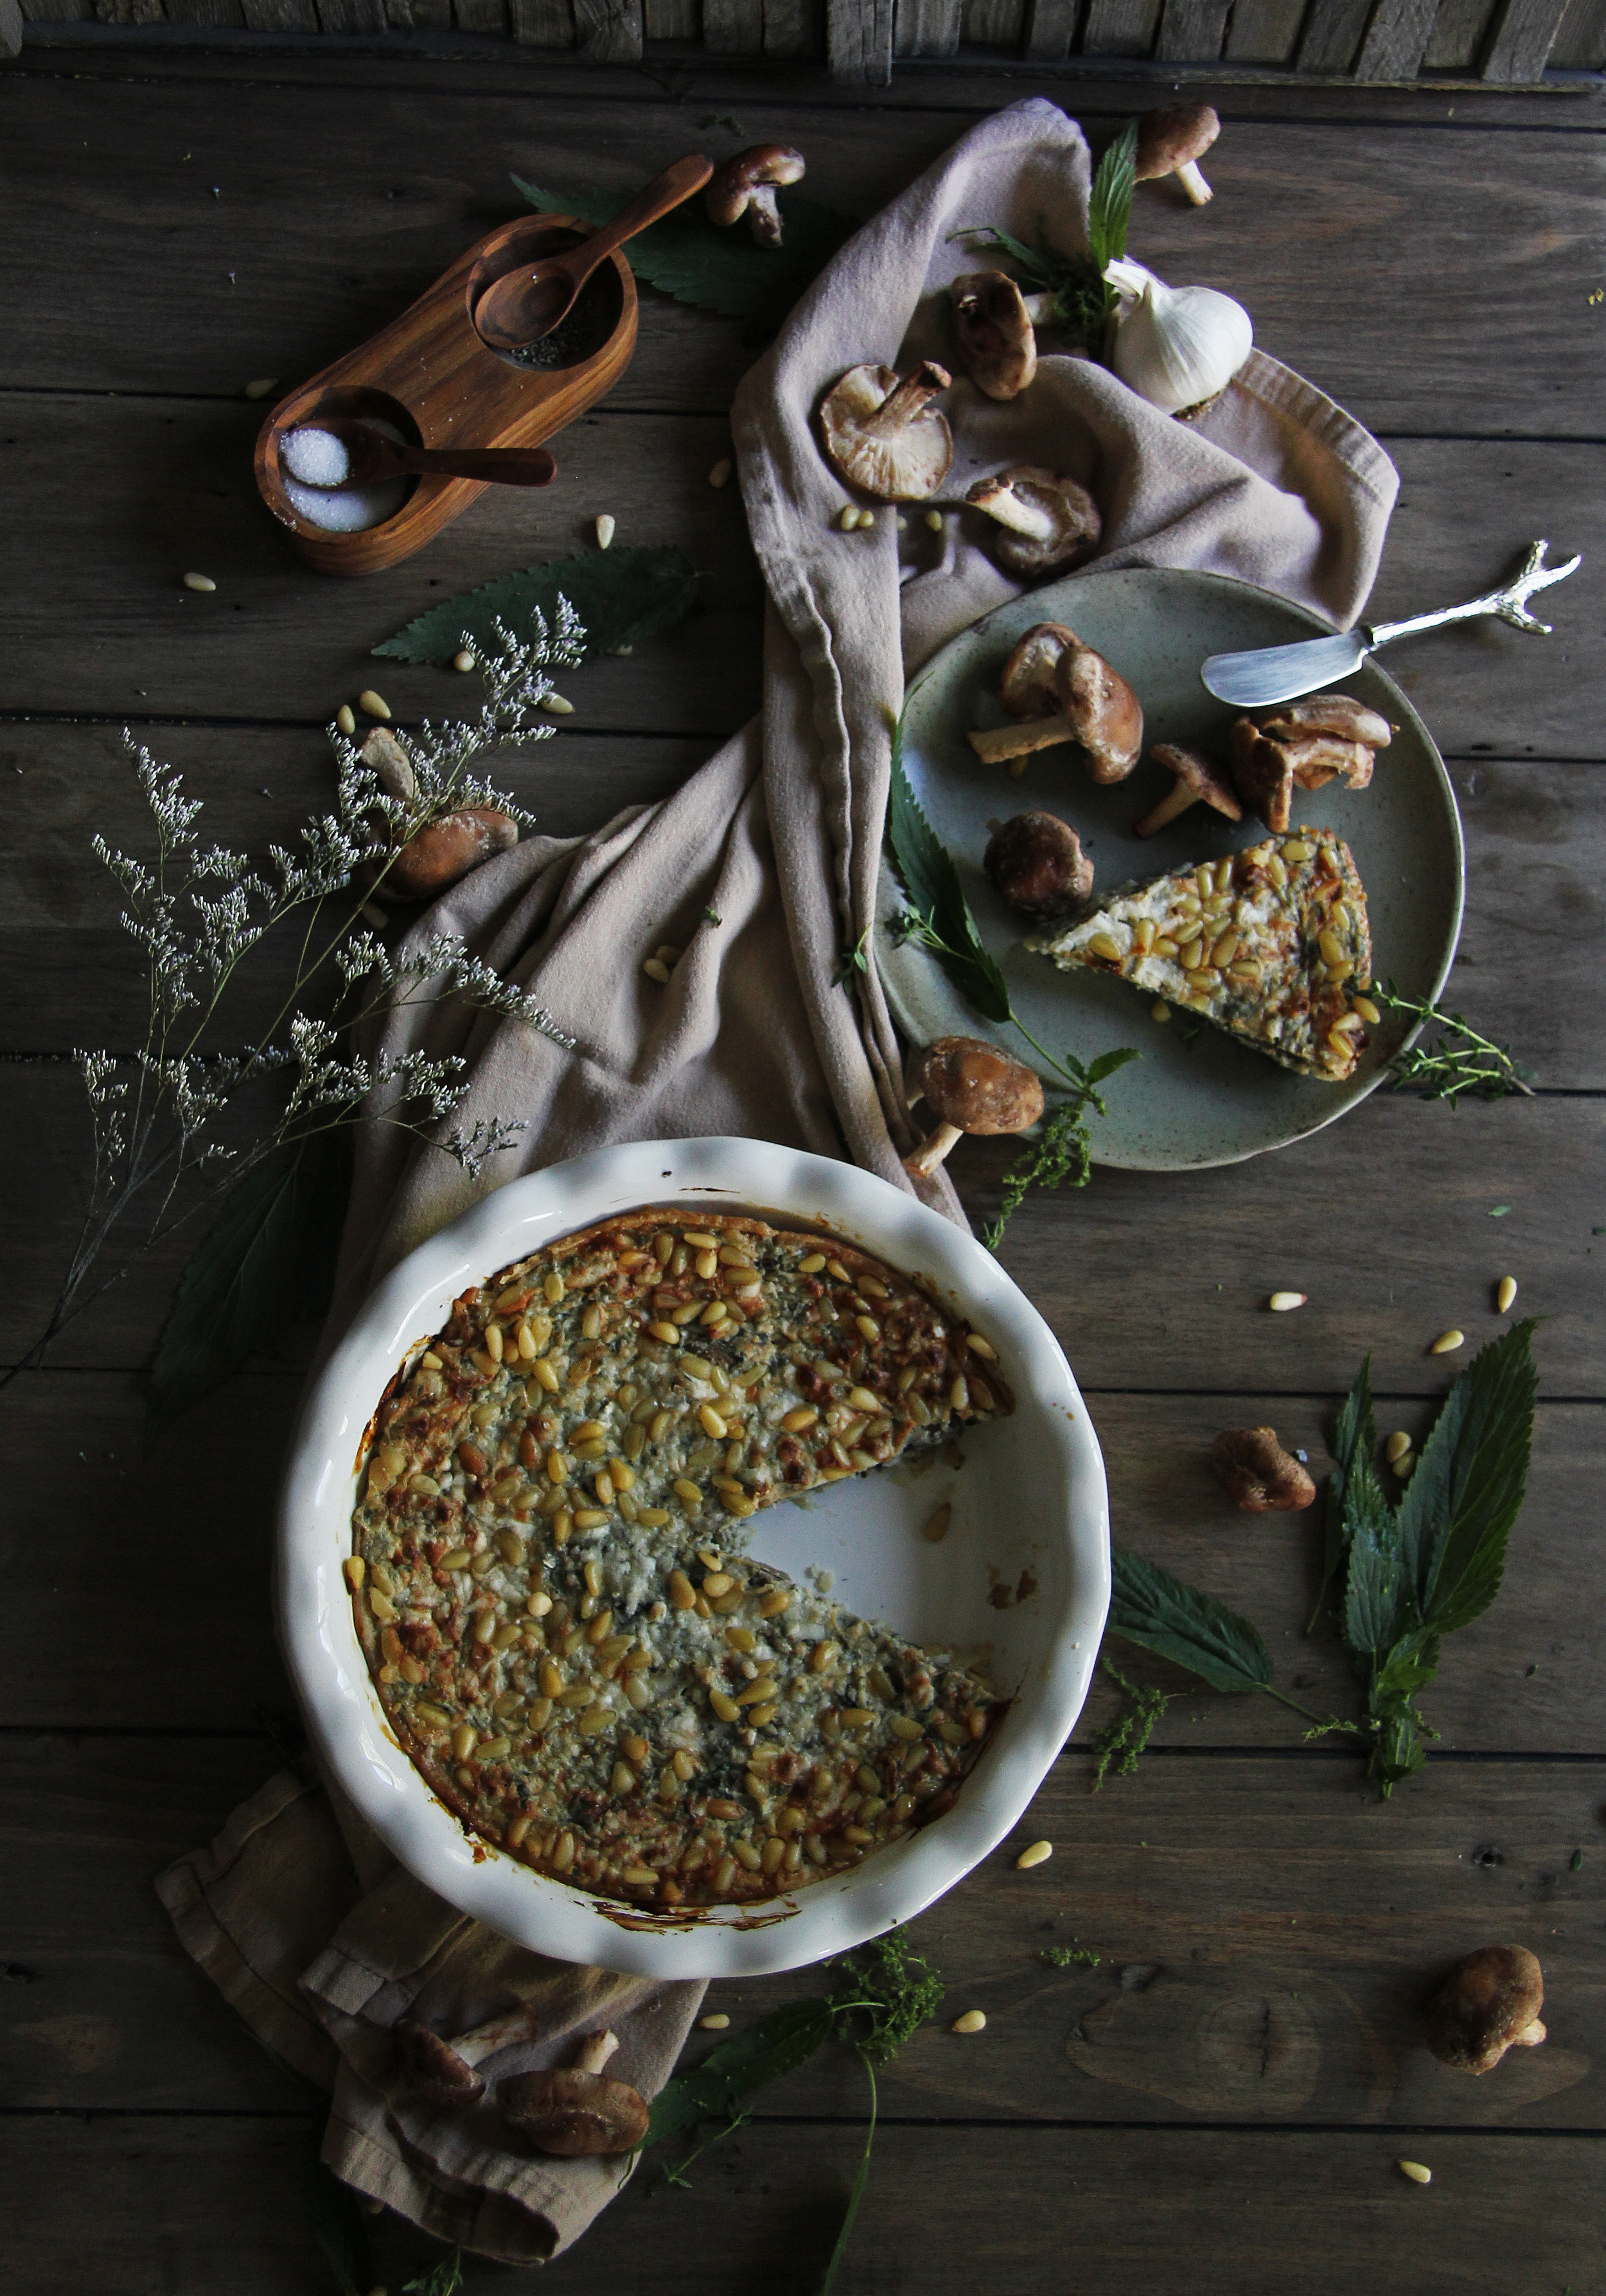 Stinging nettle and mushroom pie with pine nuts